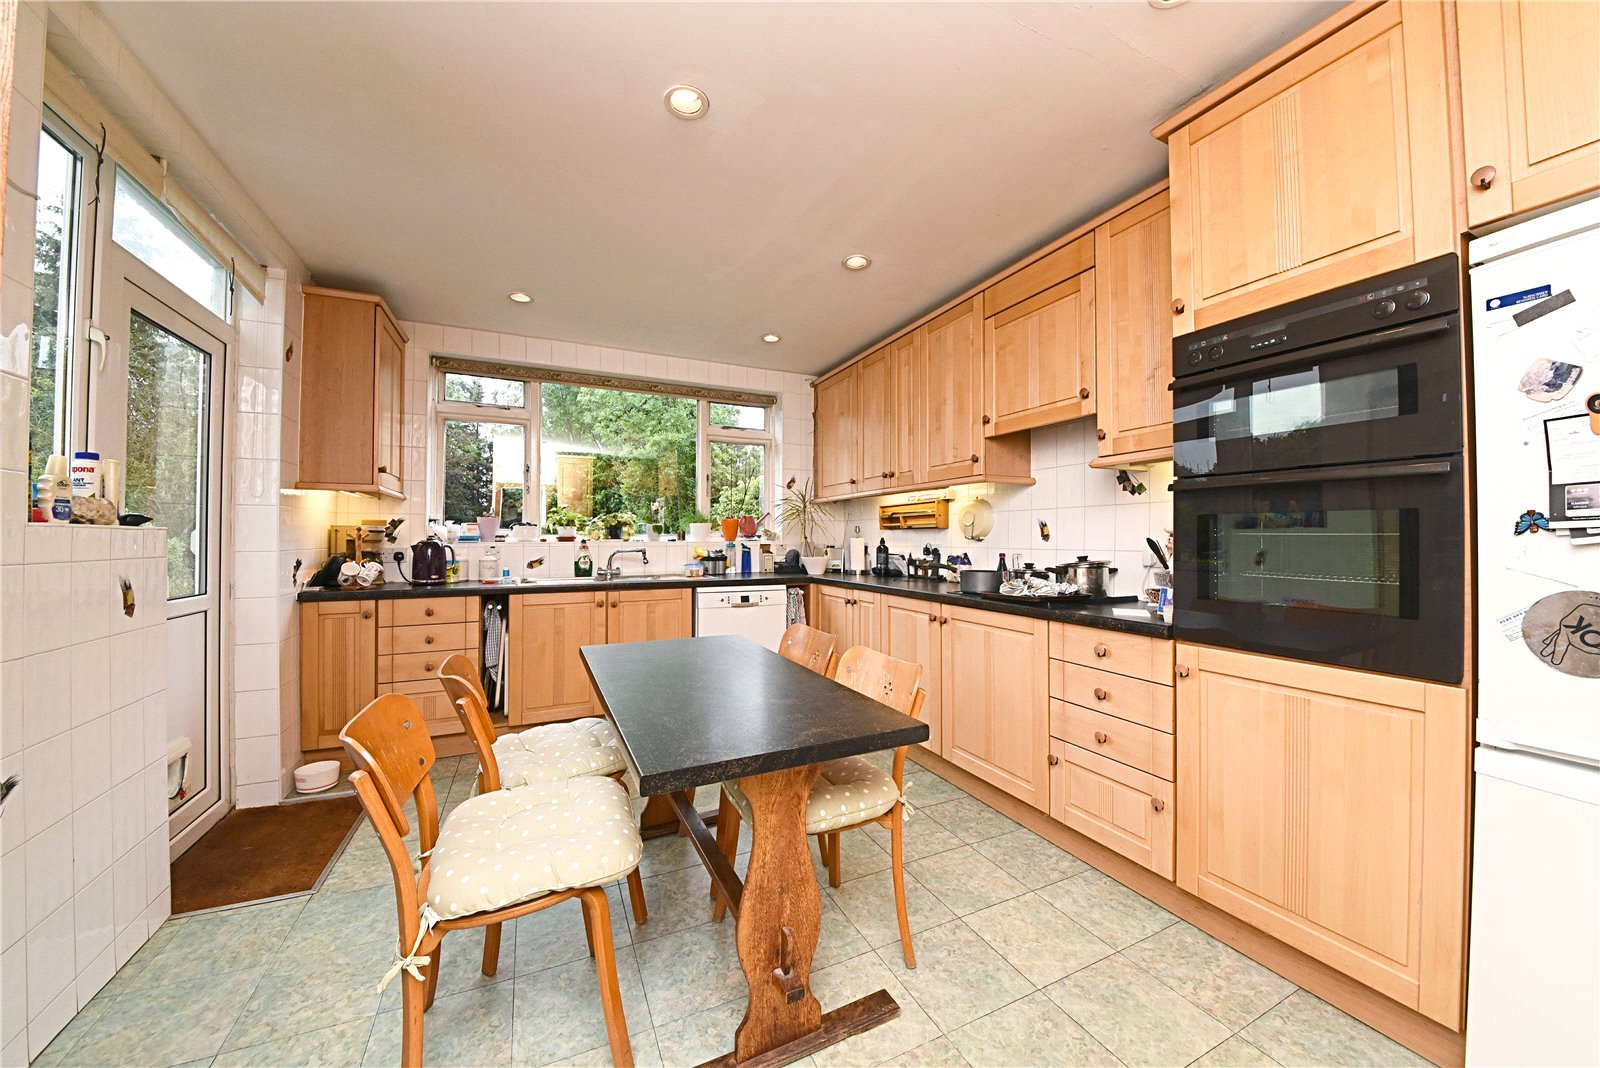 4 bed house for sale in Chandos Avenue, Whetstone, N20